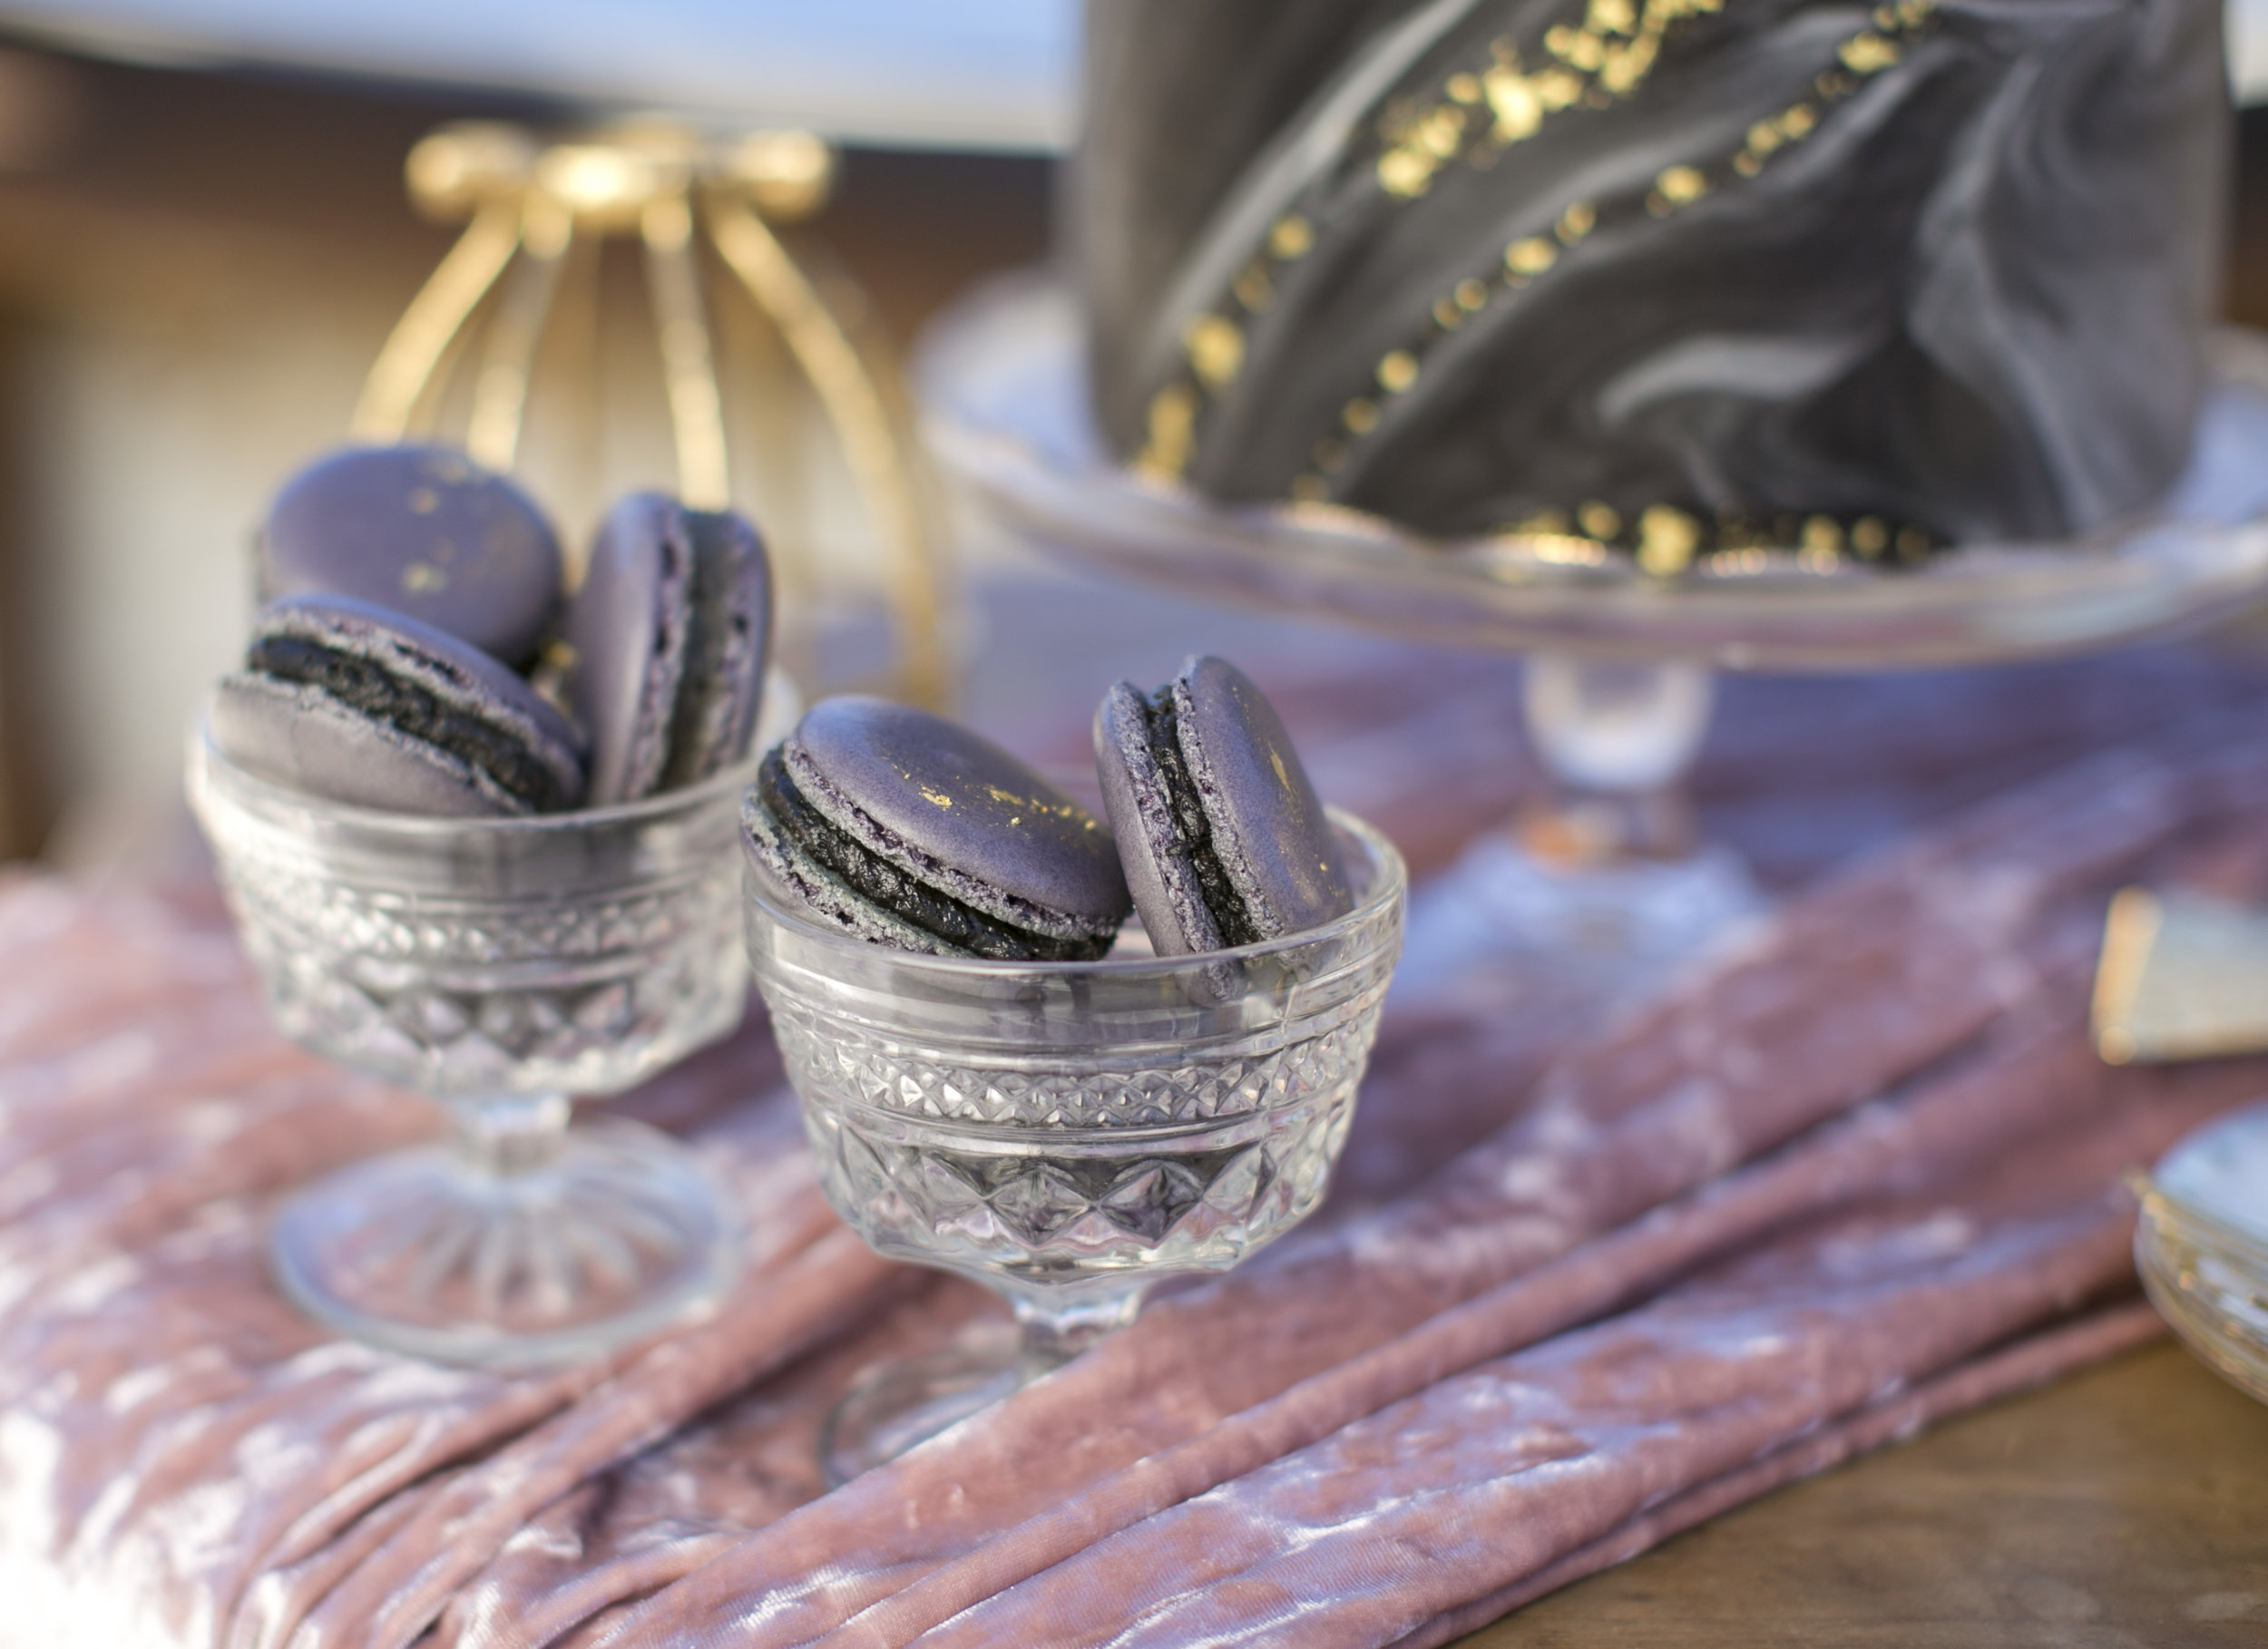 Dark chocolate macaroons with gold flecks